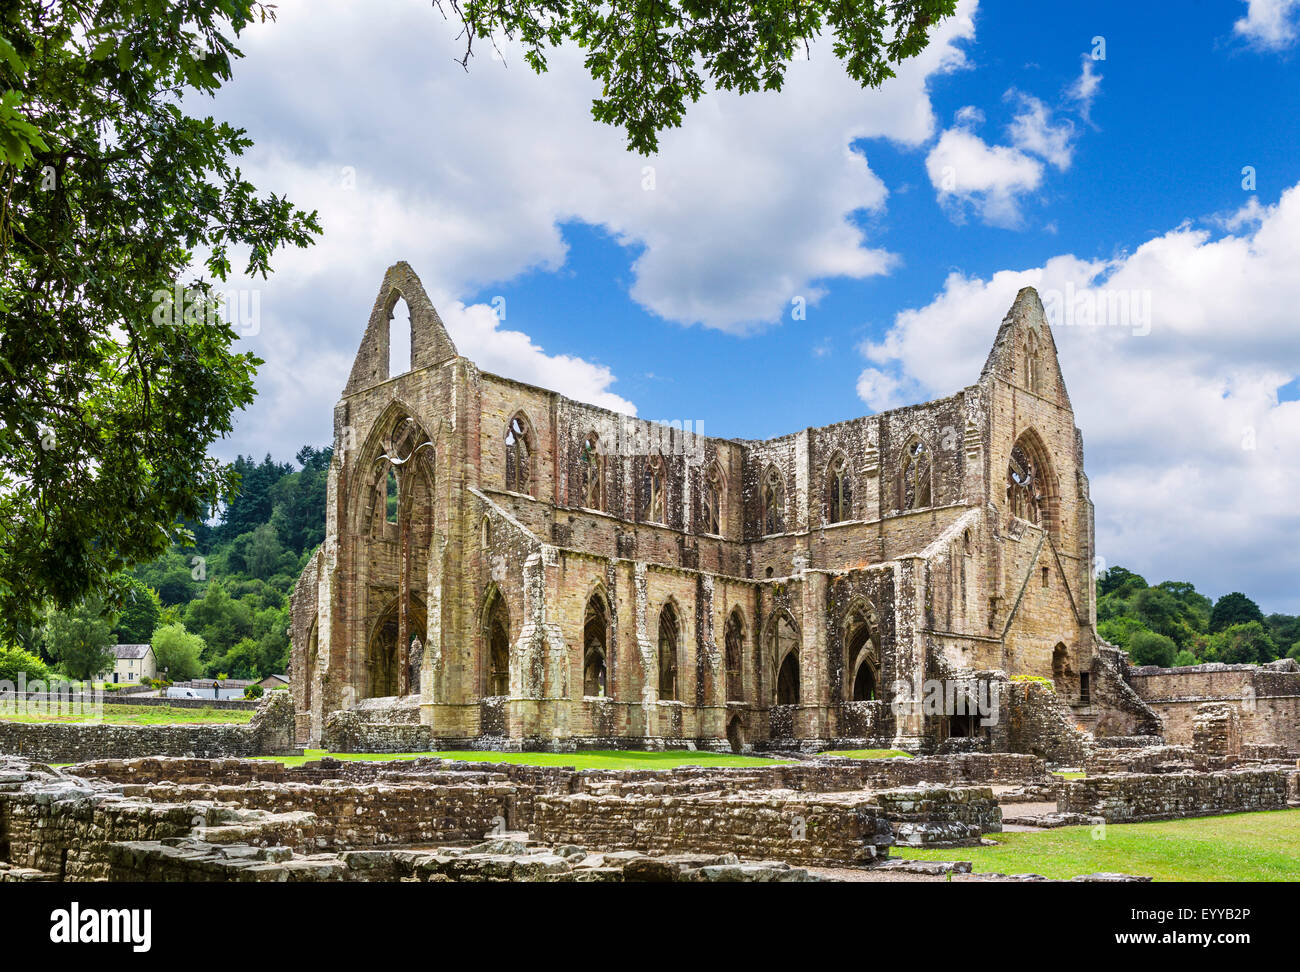 Tintern Abbey. The ruins of Tintern Abbey, near Chepstow, Wye Valley, Monmouthshire, Wales, UK - Stock Image